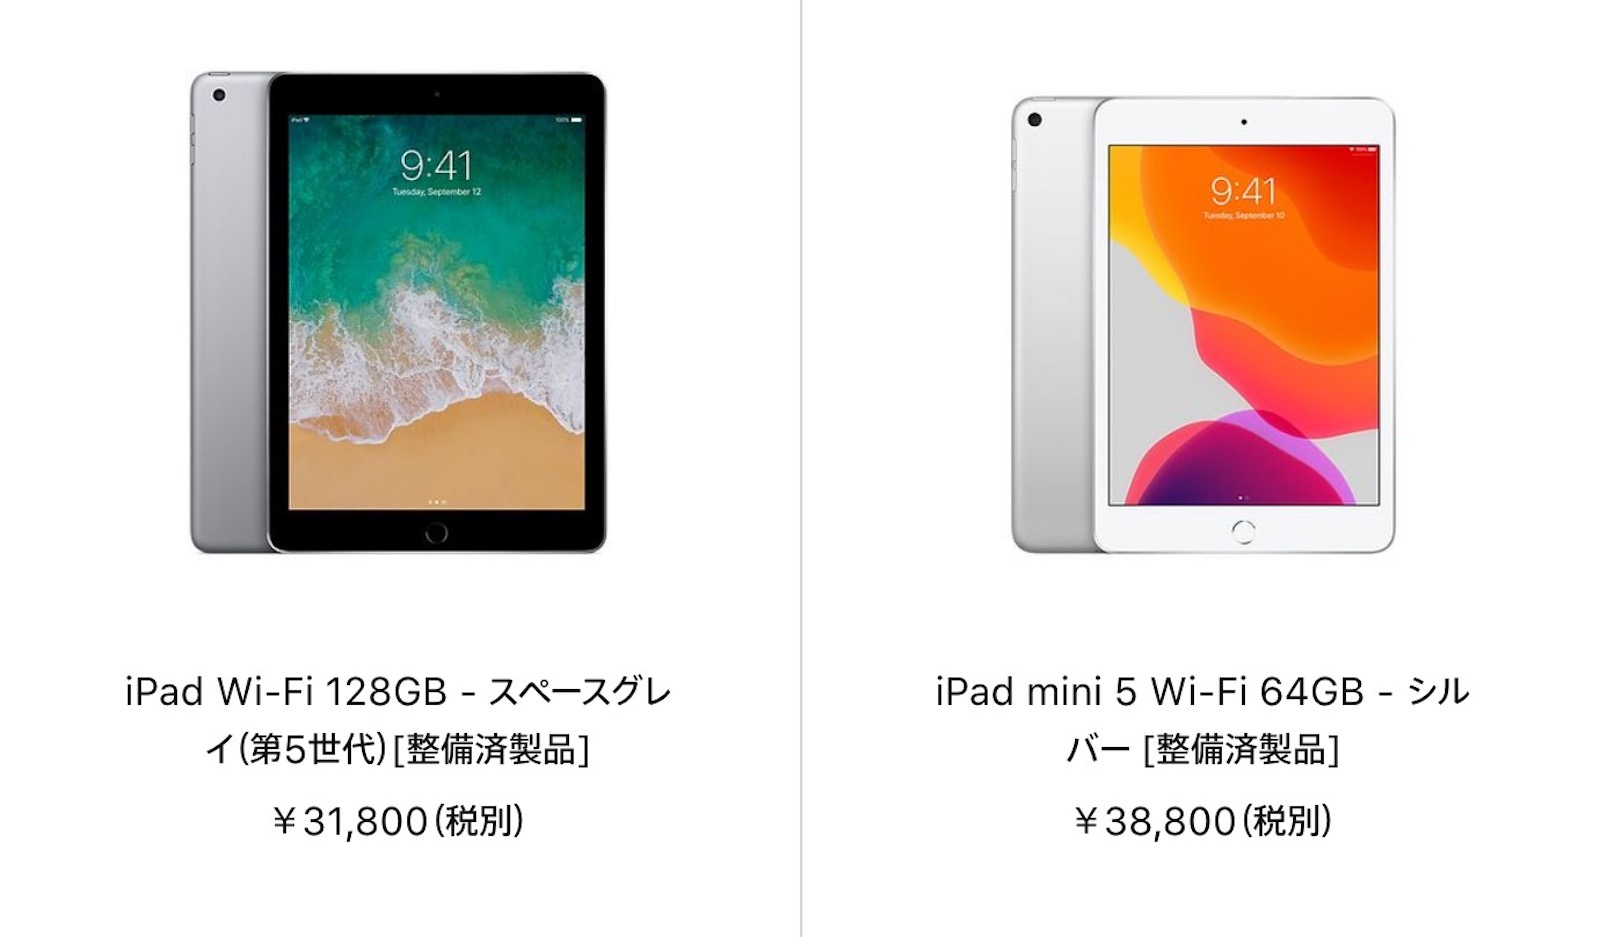 ipad mini 5 and ipad